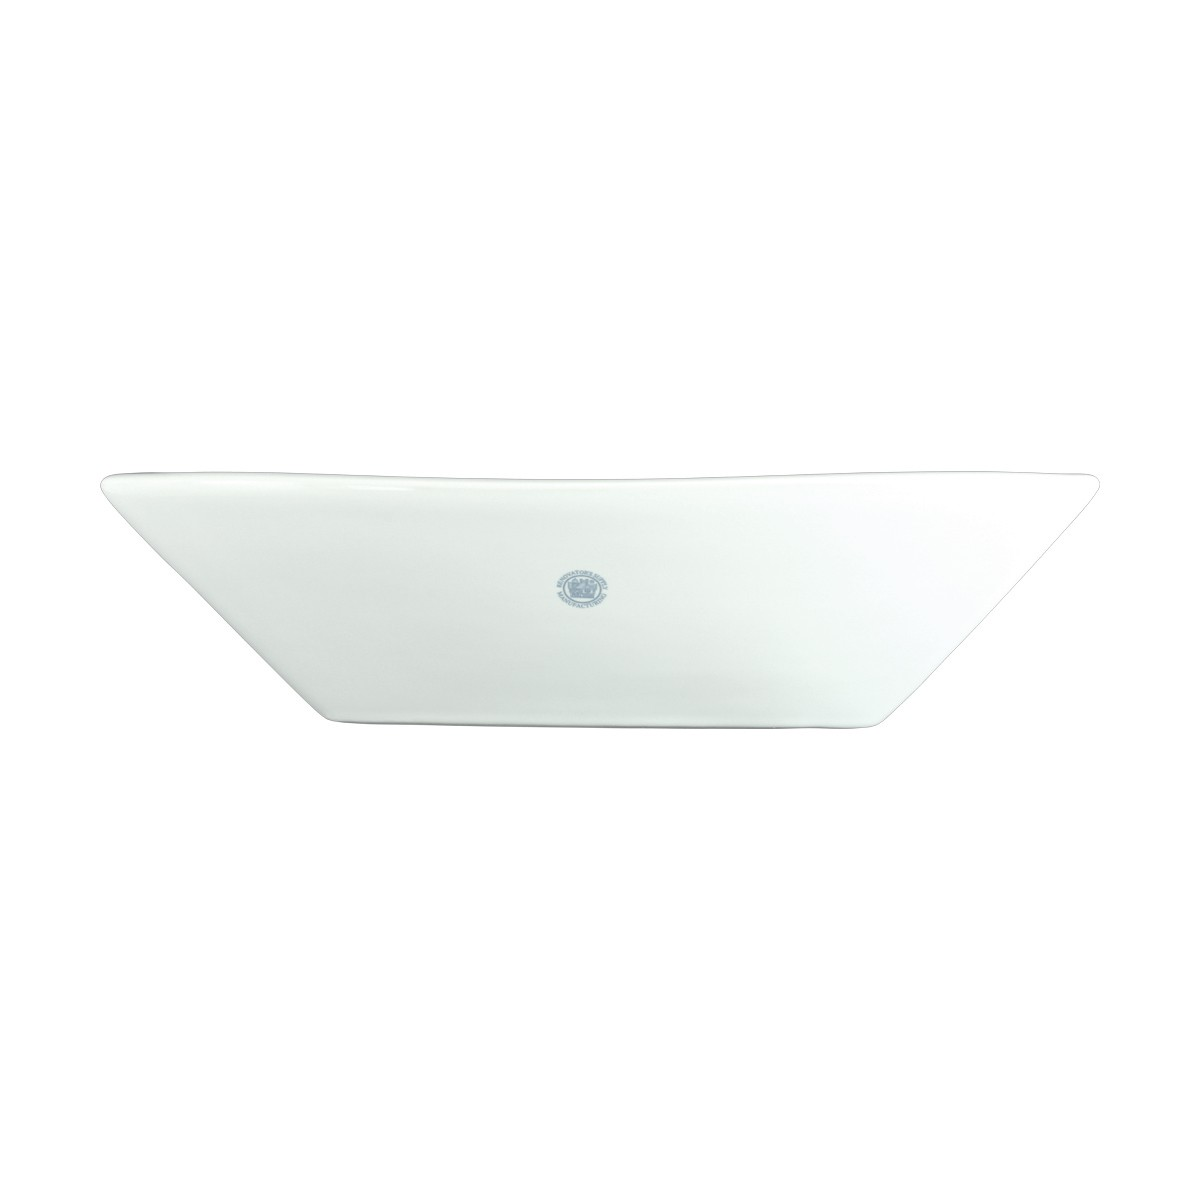 Renovators Supply White Vessel Sink Square Porcelain Set of 4 bathroom vessel sinks Countertop vessel sink Decor Star CB006  B003178L96  Alternative